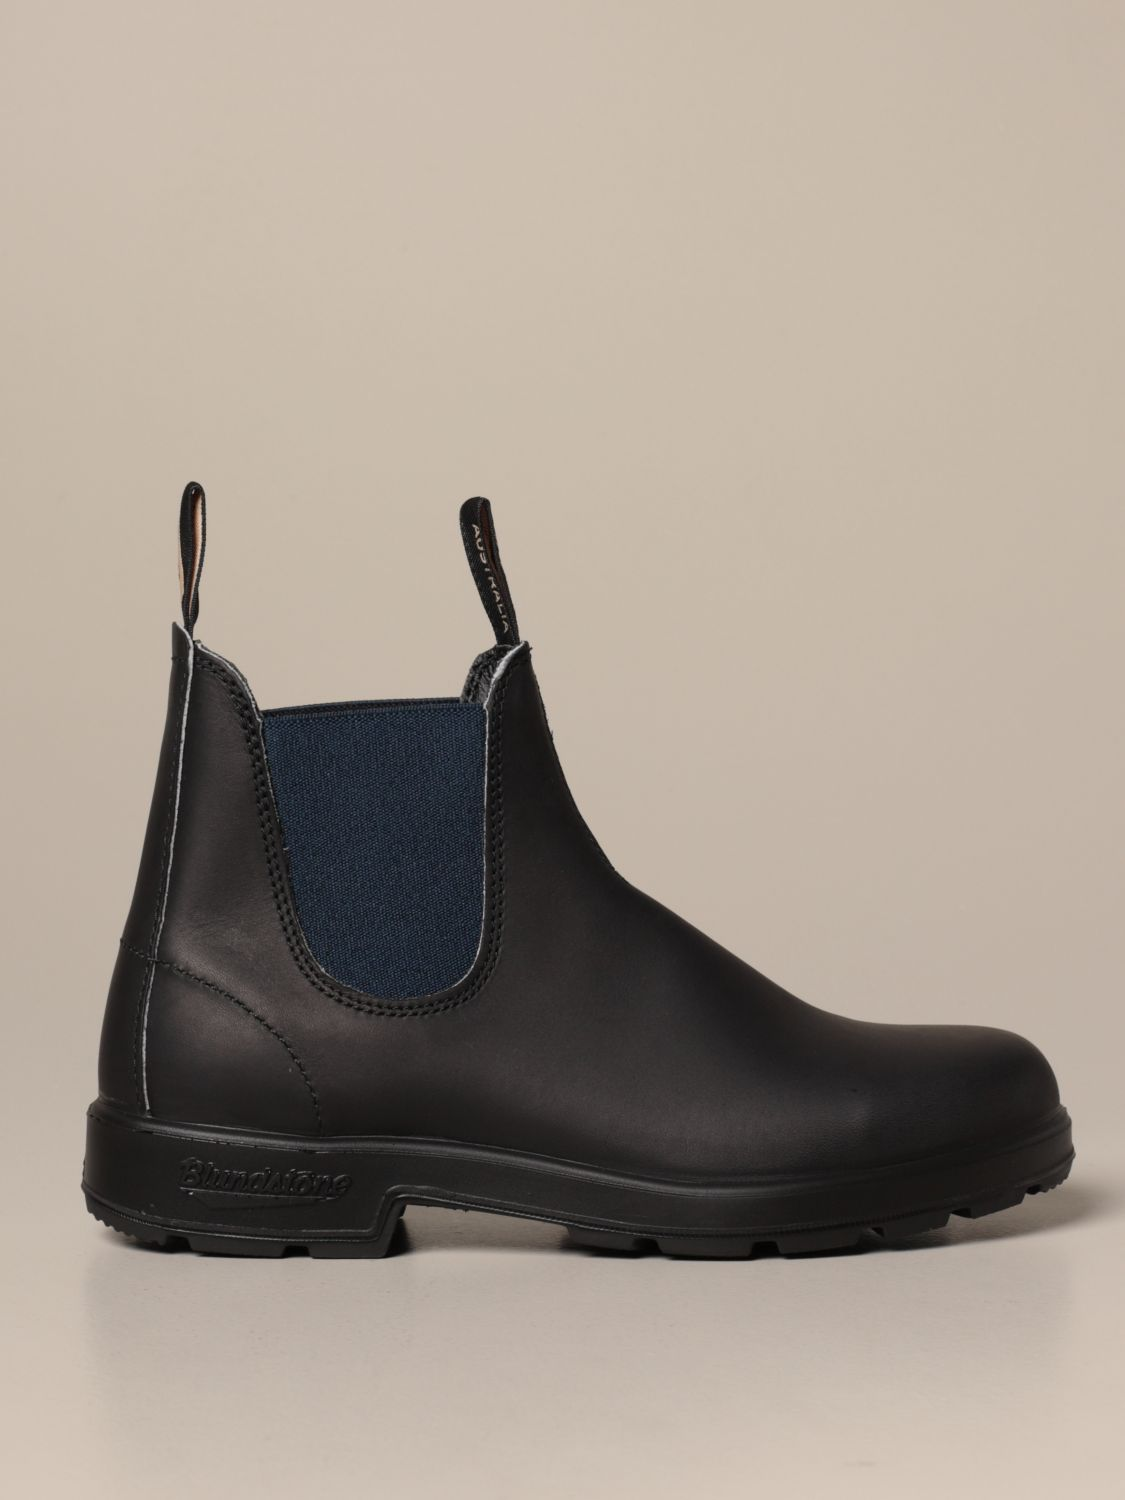 Boots Blundstone: Boots men Blundstone navy 1